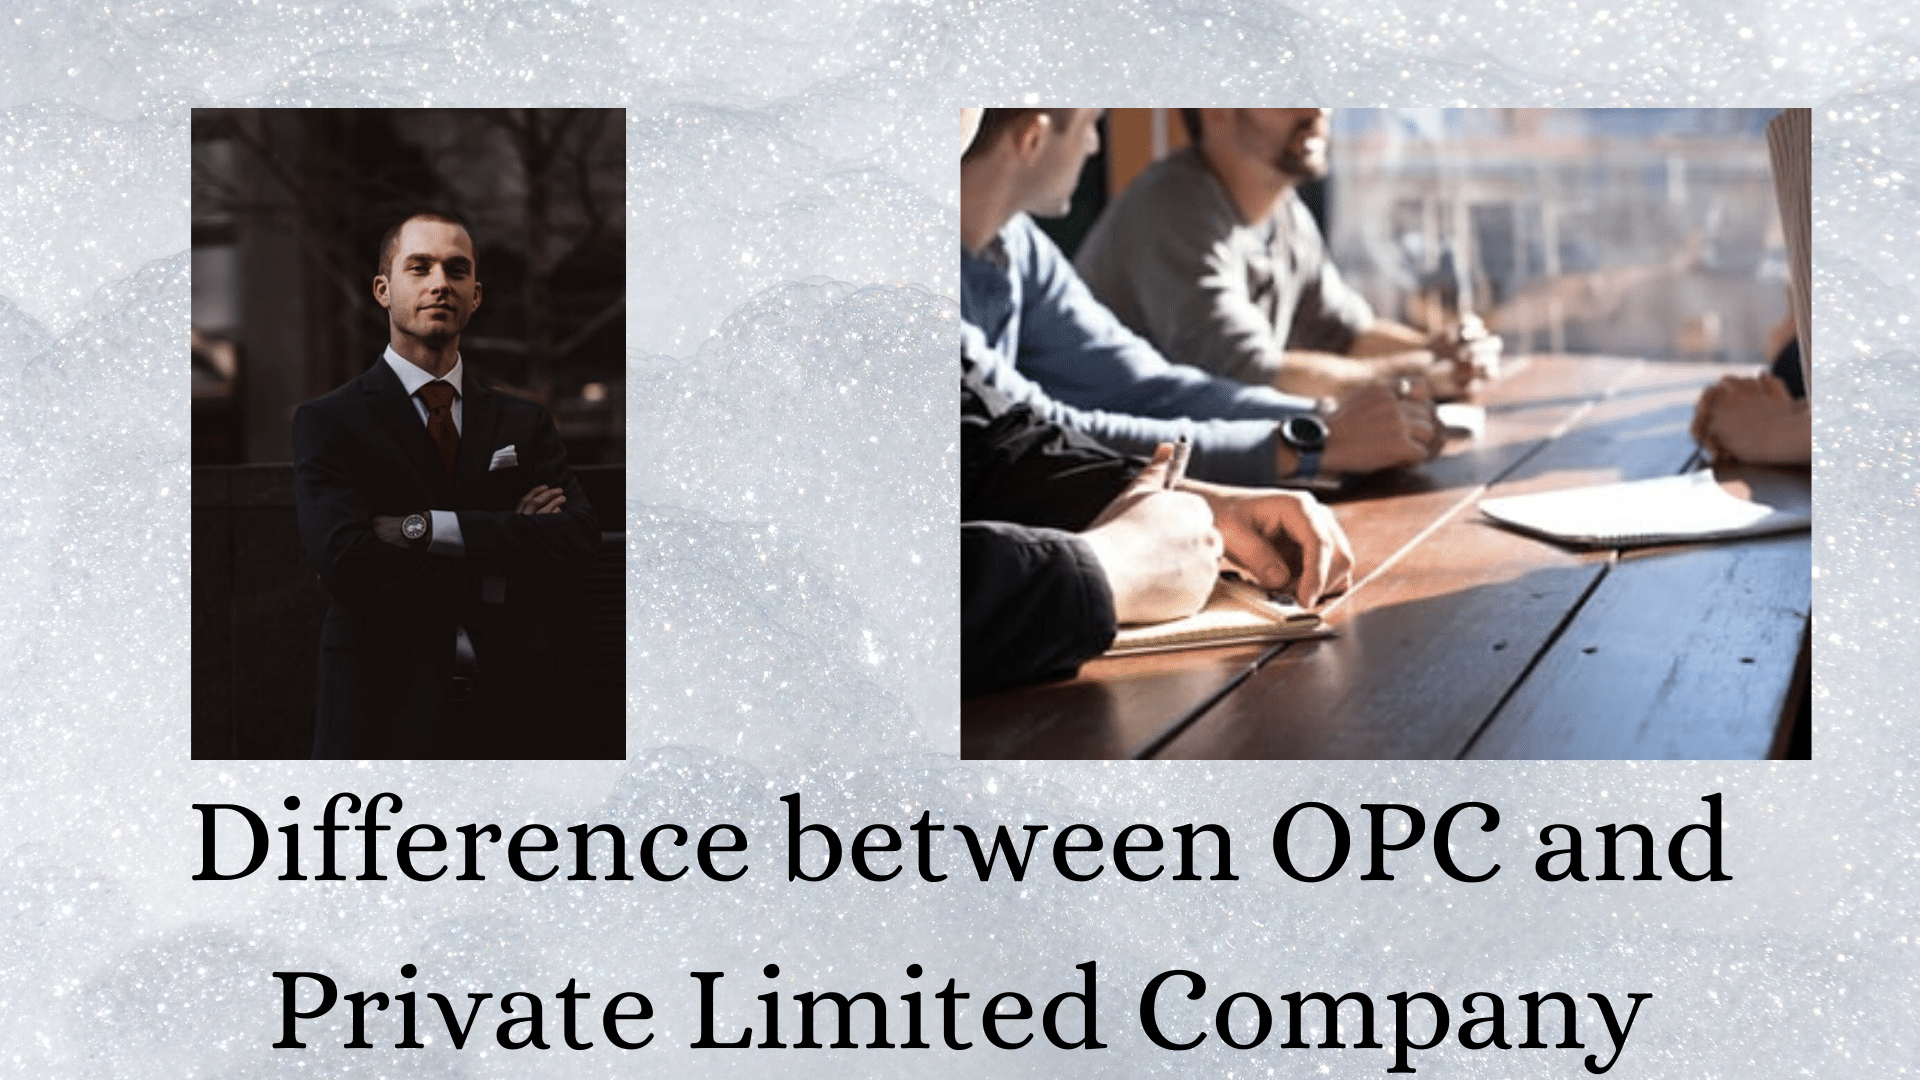 It is indicative of the difference between OPC and Private Limited Company. It shows an entrepreneur on the side representing an OPC and